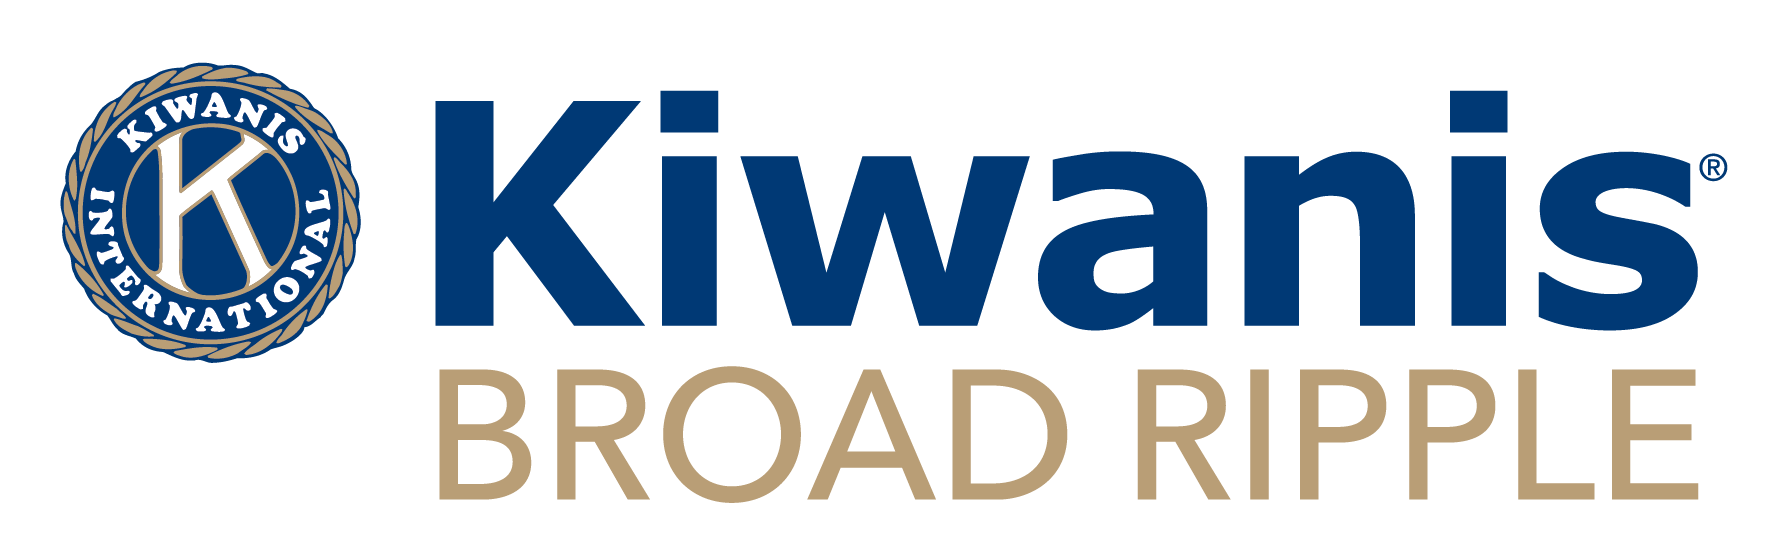 Broad Ripple Kiwanis Club